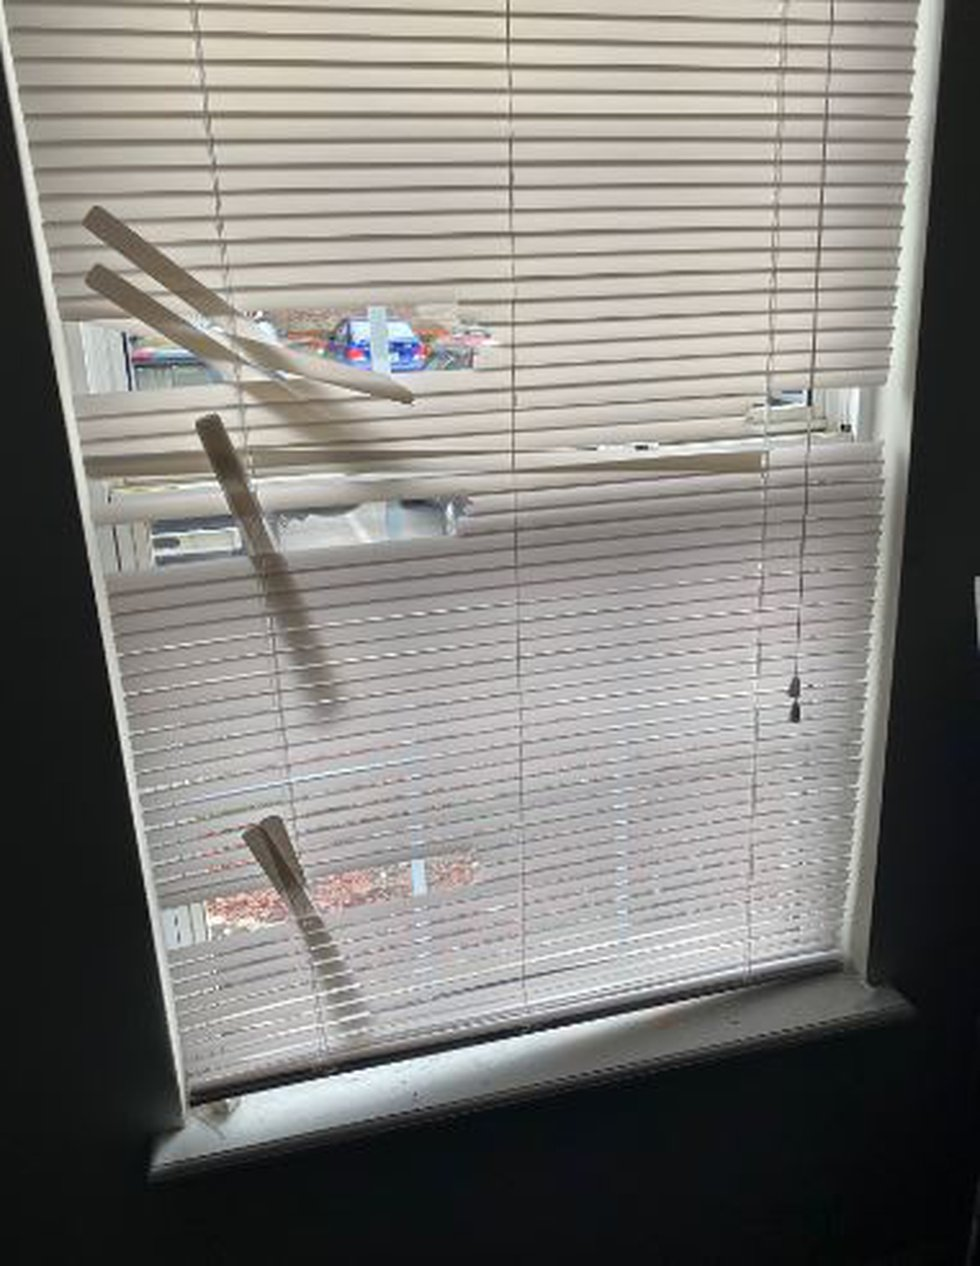 The inside of Breonna Taylor's apartment as seen after the shooting that killed her.